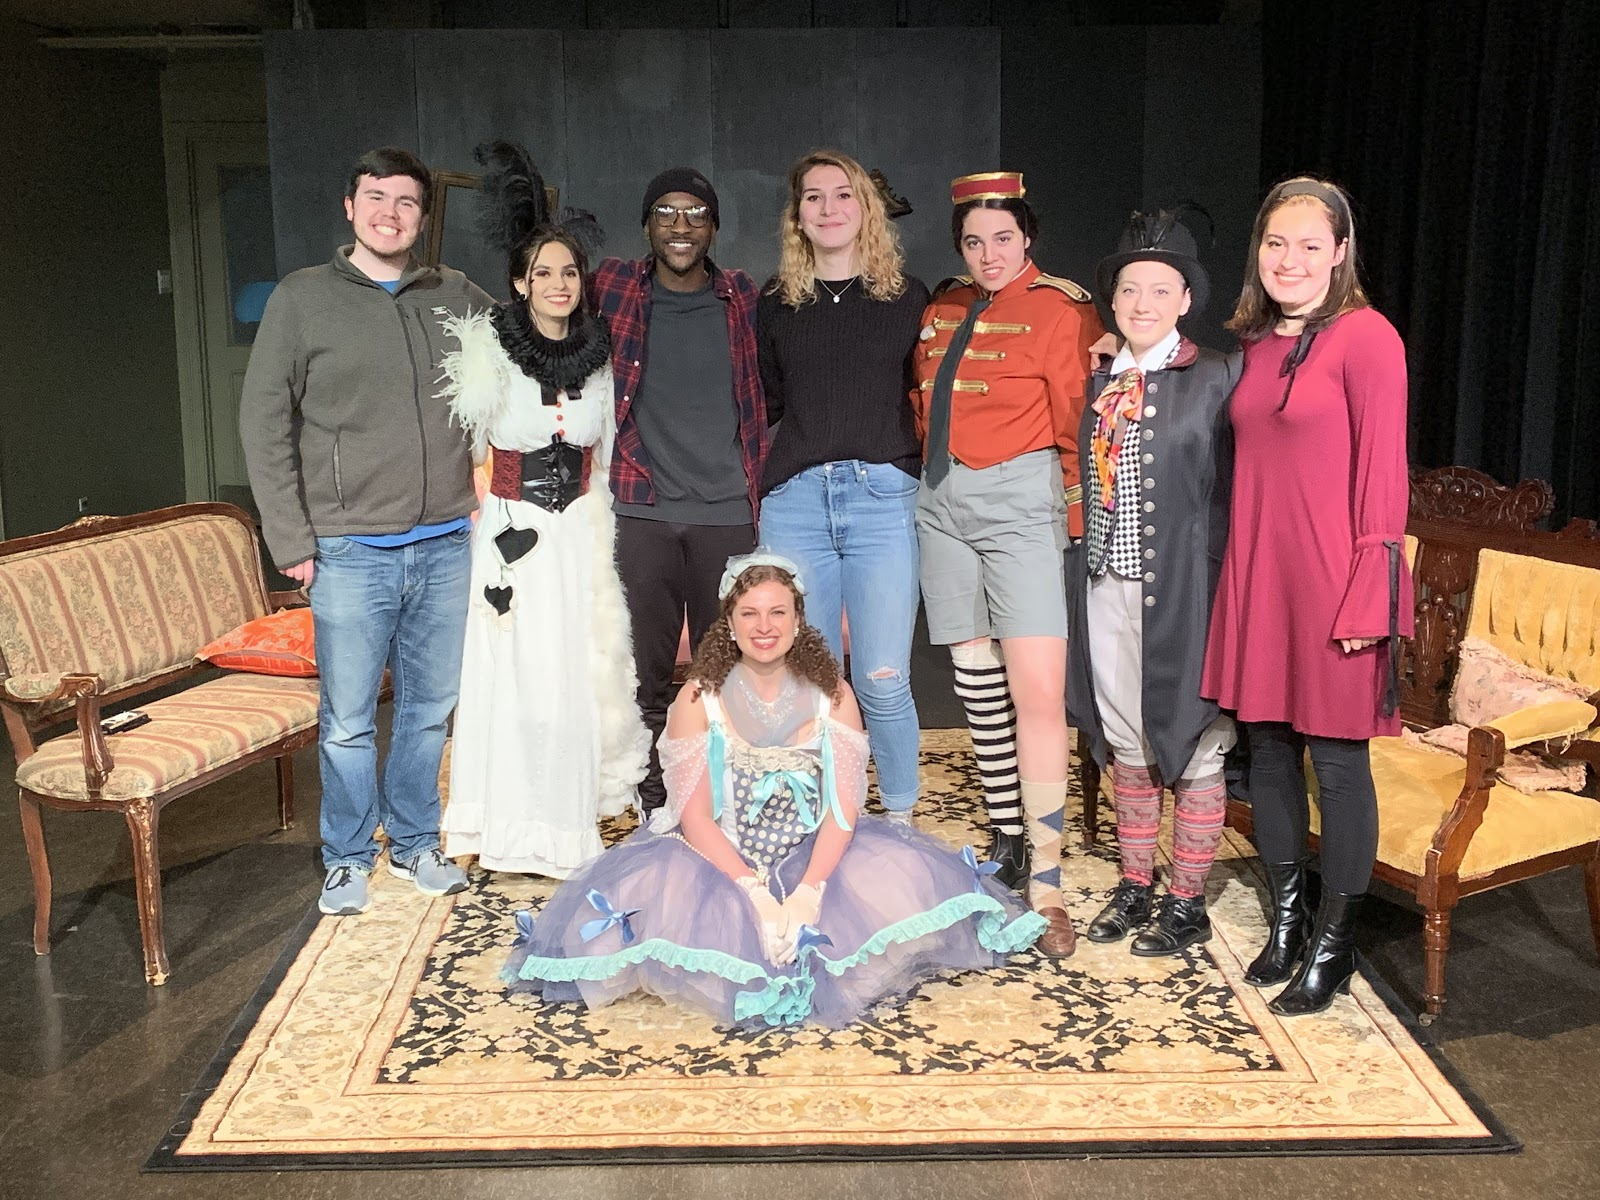 Declan Rockett '20, Scarlett Diaz-Power '20, me, Morgan Grant '20, Mia Barbuto '22, Becca Collins '21, Carly Sponzo '21 and Sonia Joffe '19 pose in their costumes on the set of No Exit